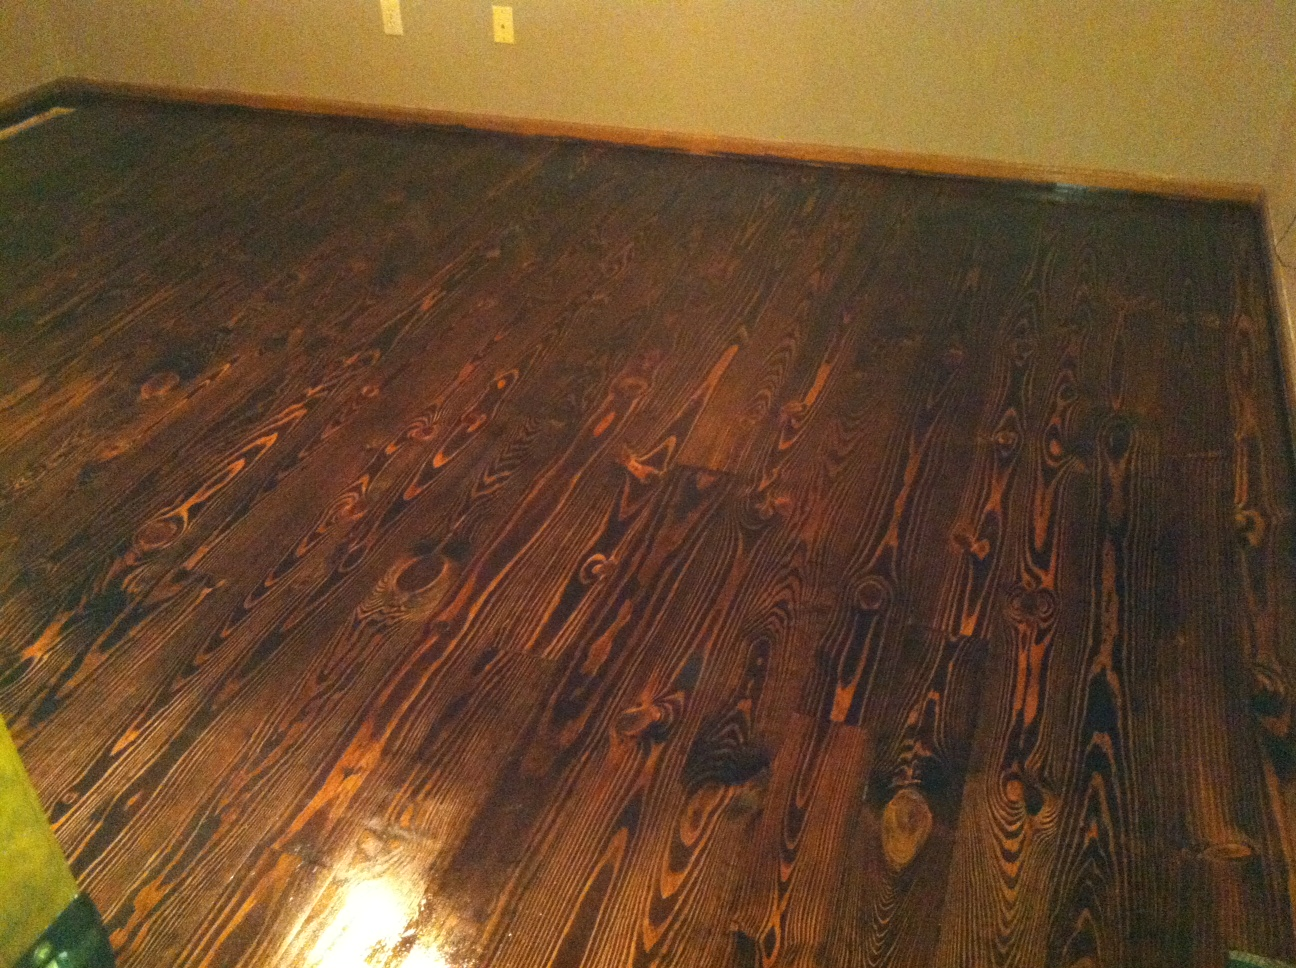 Knotty Pine Flooring Part 2 Finished